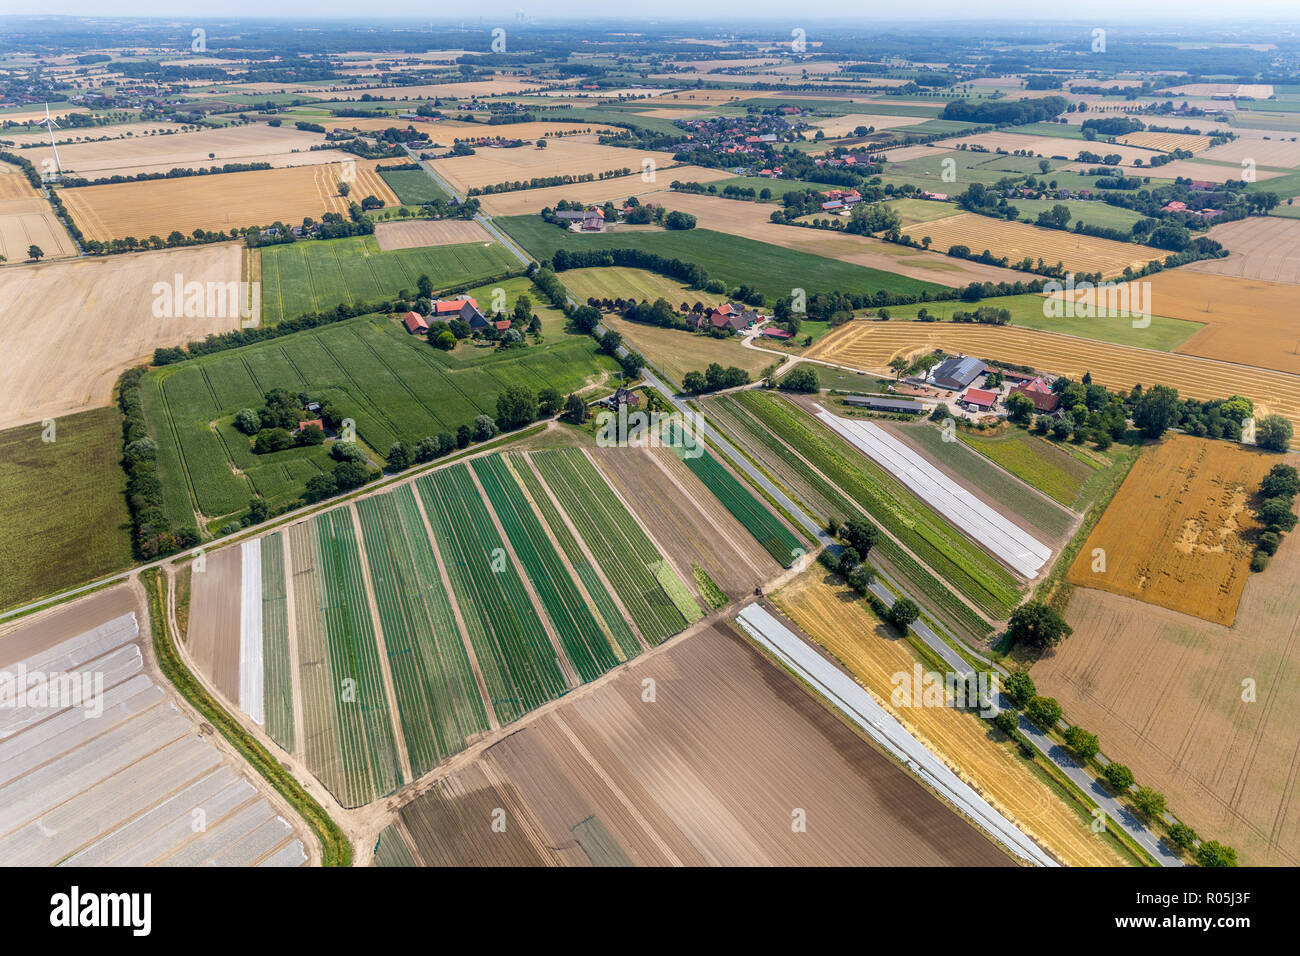 Aerial view, organic farm Angenendt, Mersch, Drensteinfurt, Münsterland, North Rhine-Westphalia, Germany, Europe, DEU, birds-eyes view, aerial view, a - Stock Image